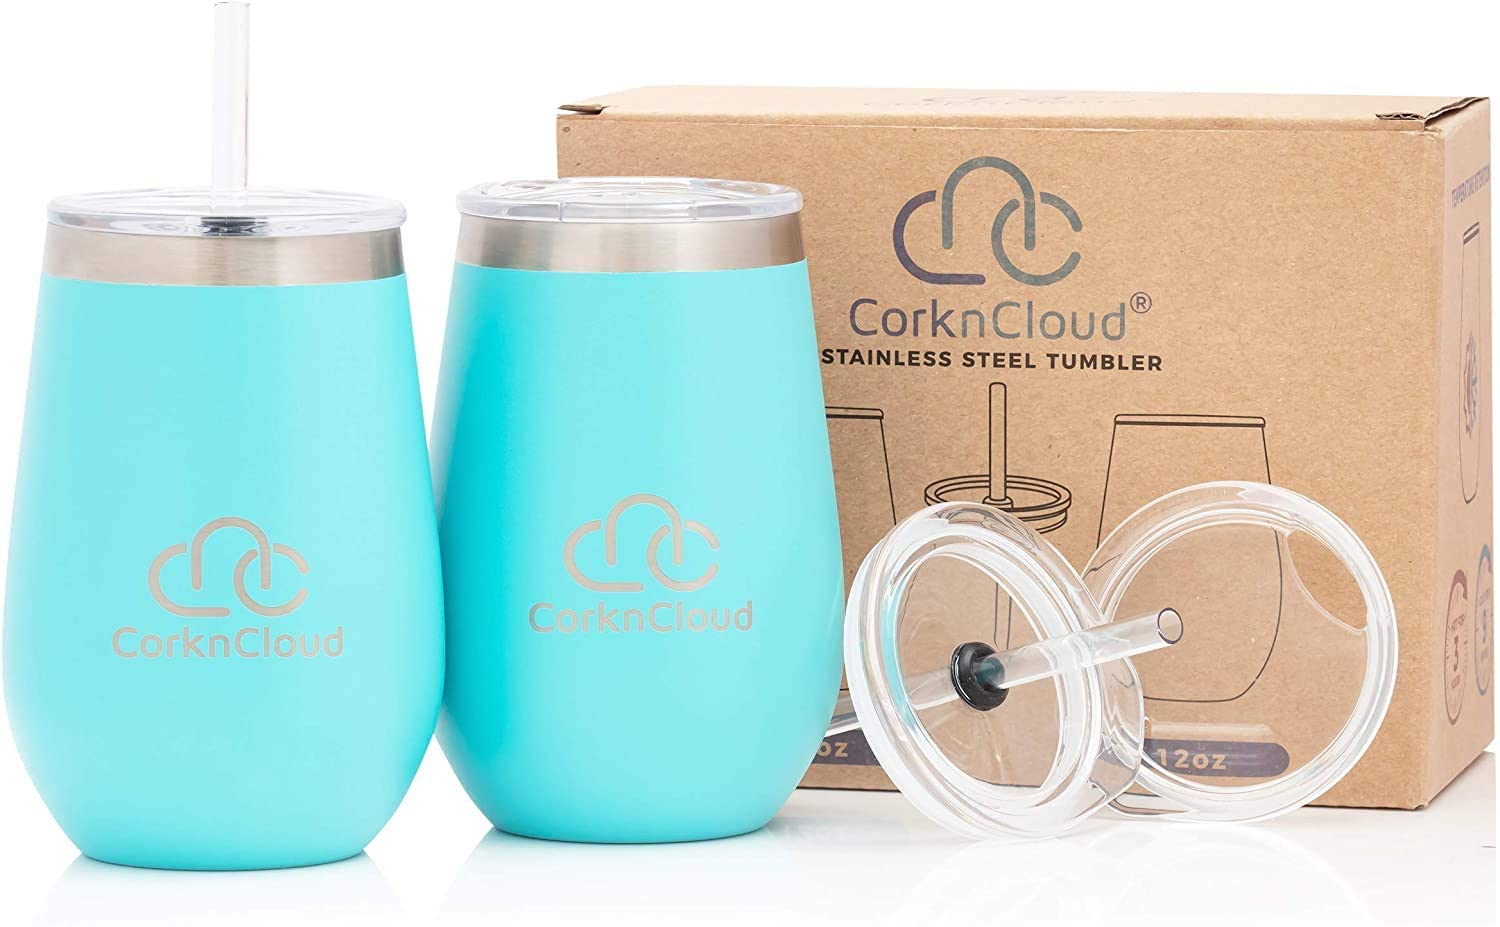 Stemless Stainless Steel Insulated Wine Tumbler with Lid [2 pack]|Insulated Travel Wine Glass or Outdoor Cup |PC Teal